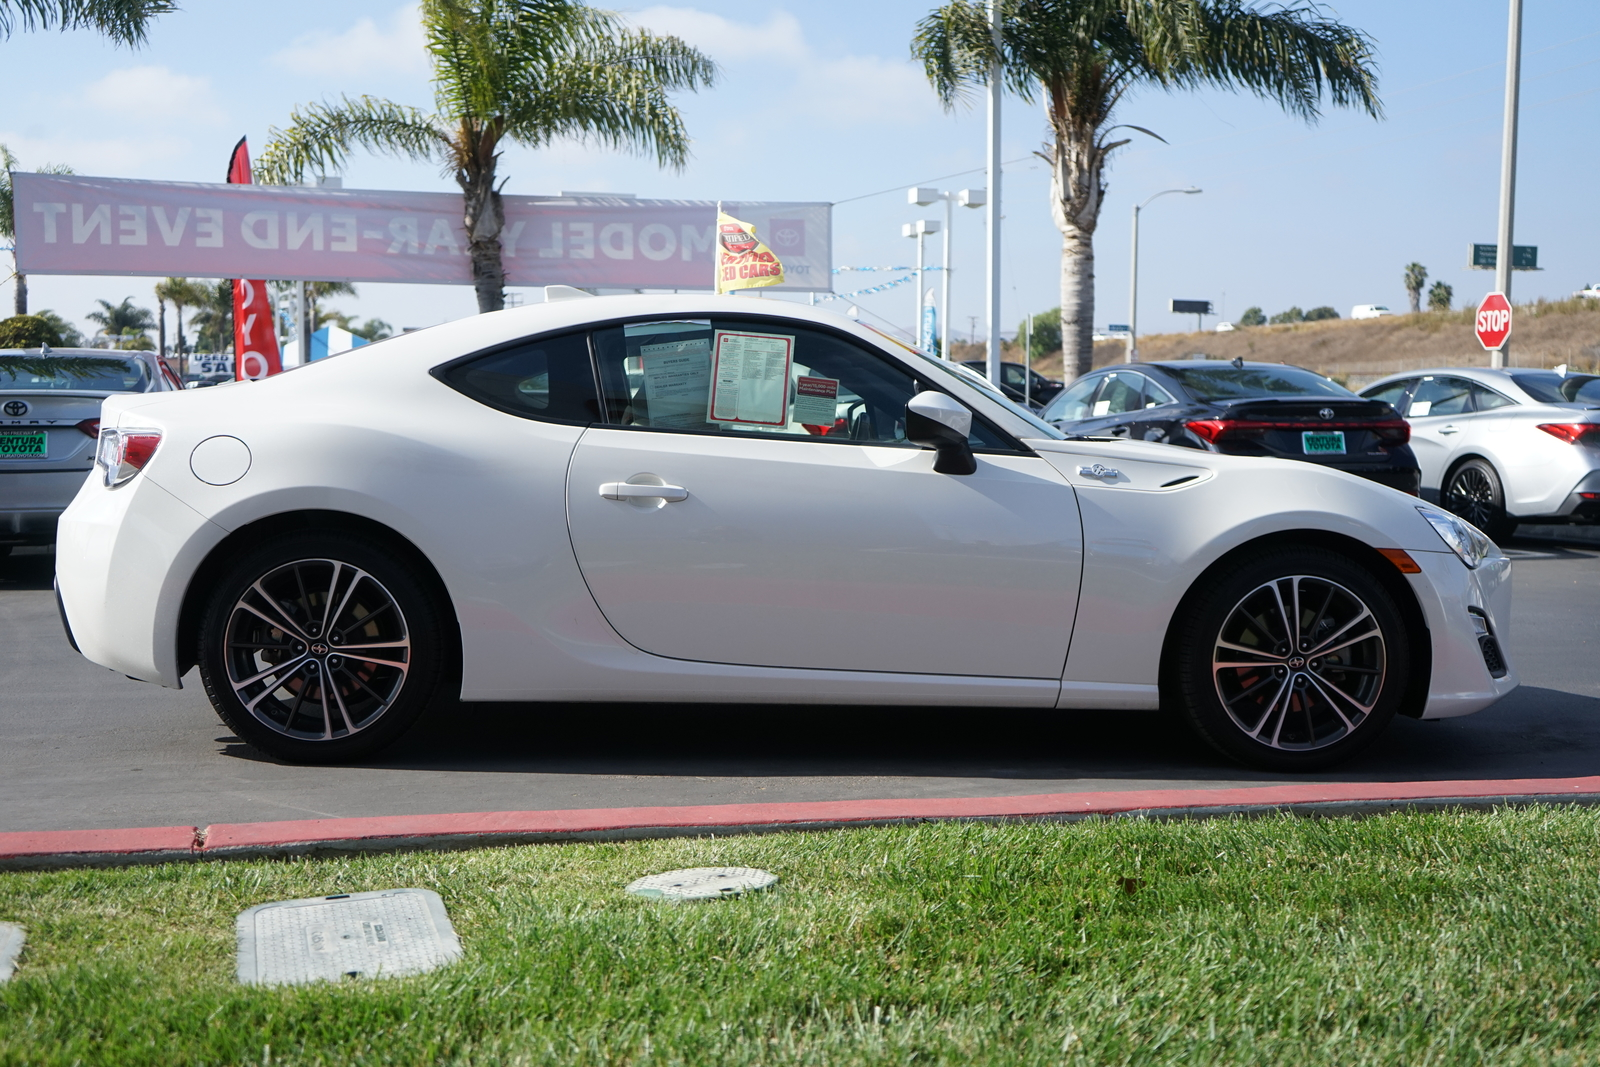 Certified Pre-Owned 2016 Scion FR-S 2dr Cpe Auto (Natl)